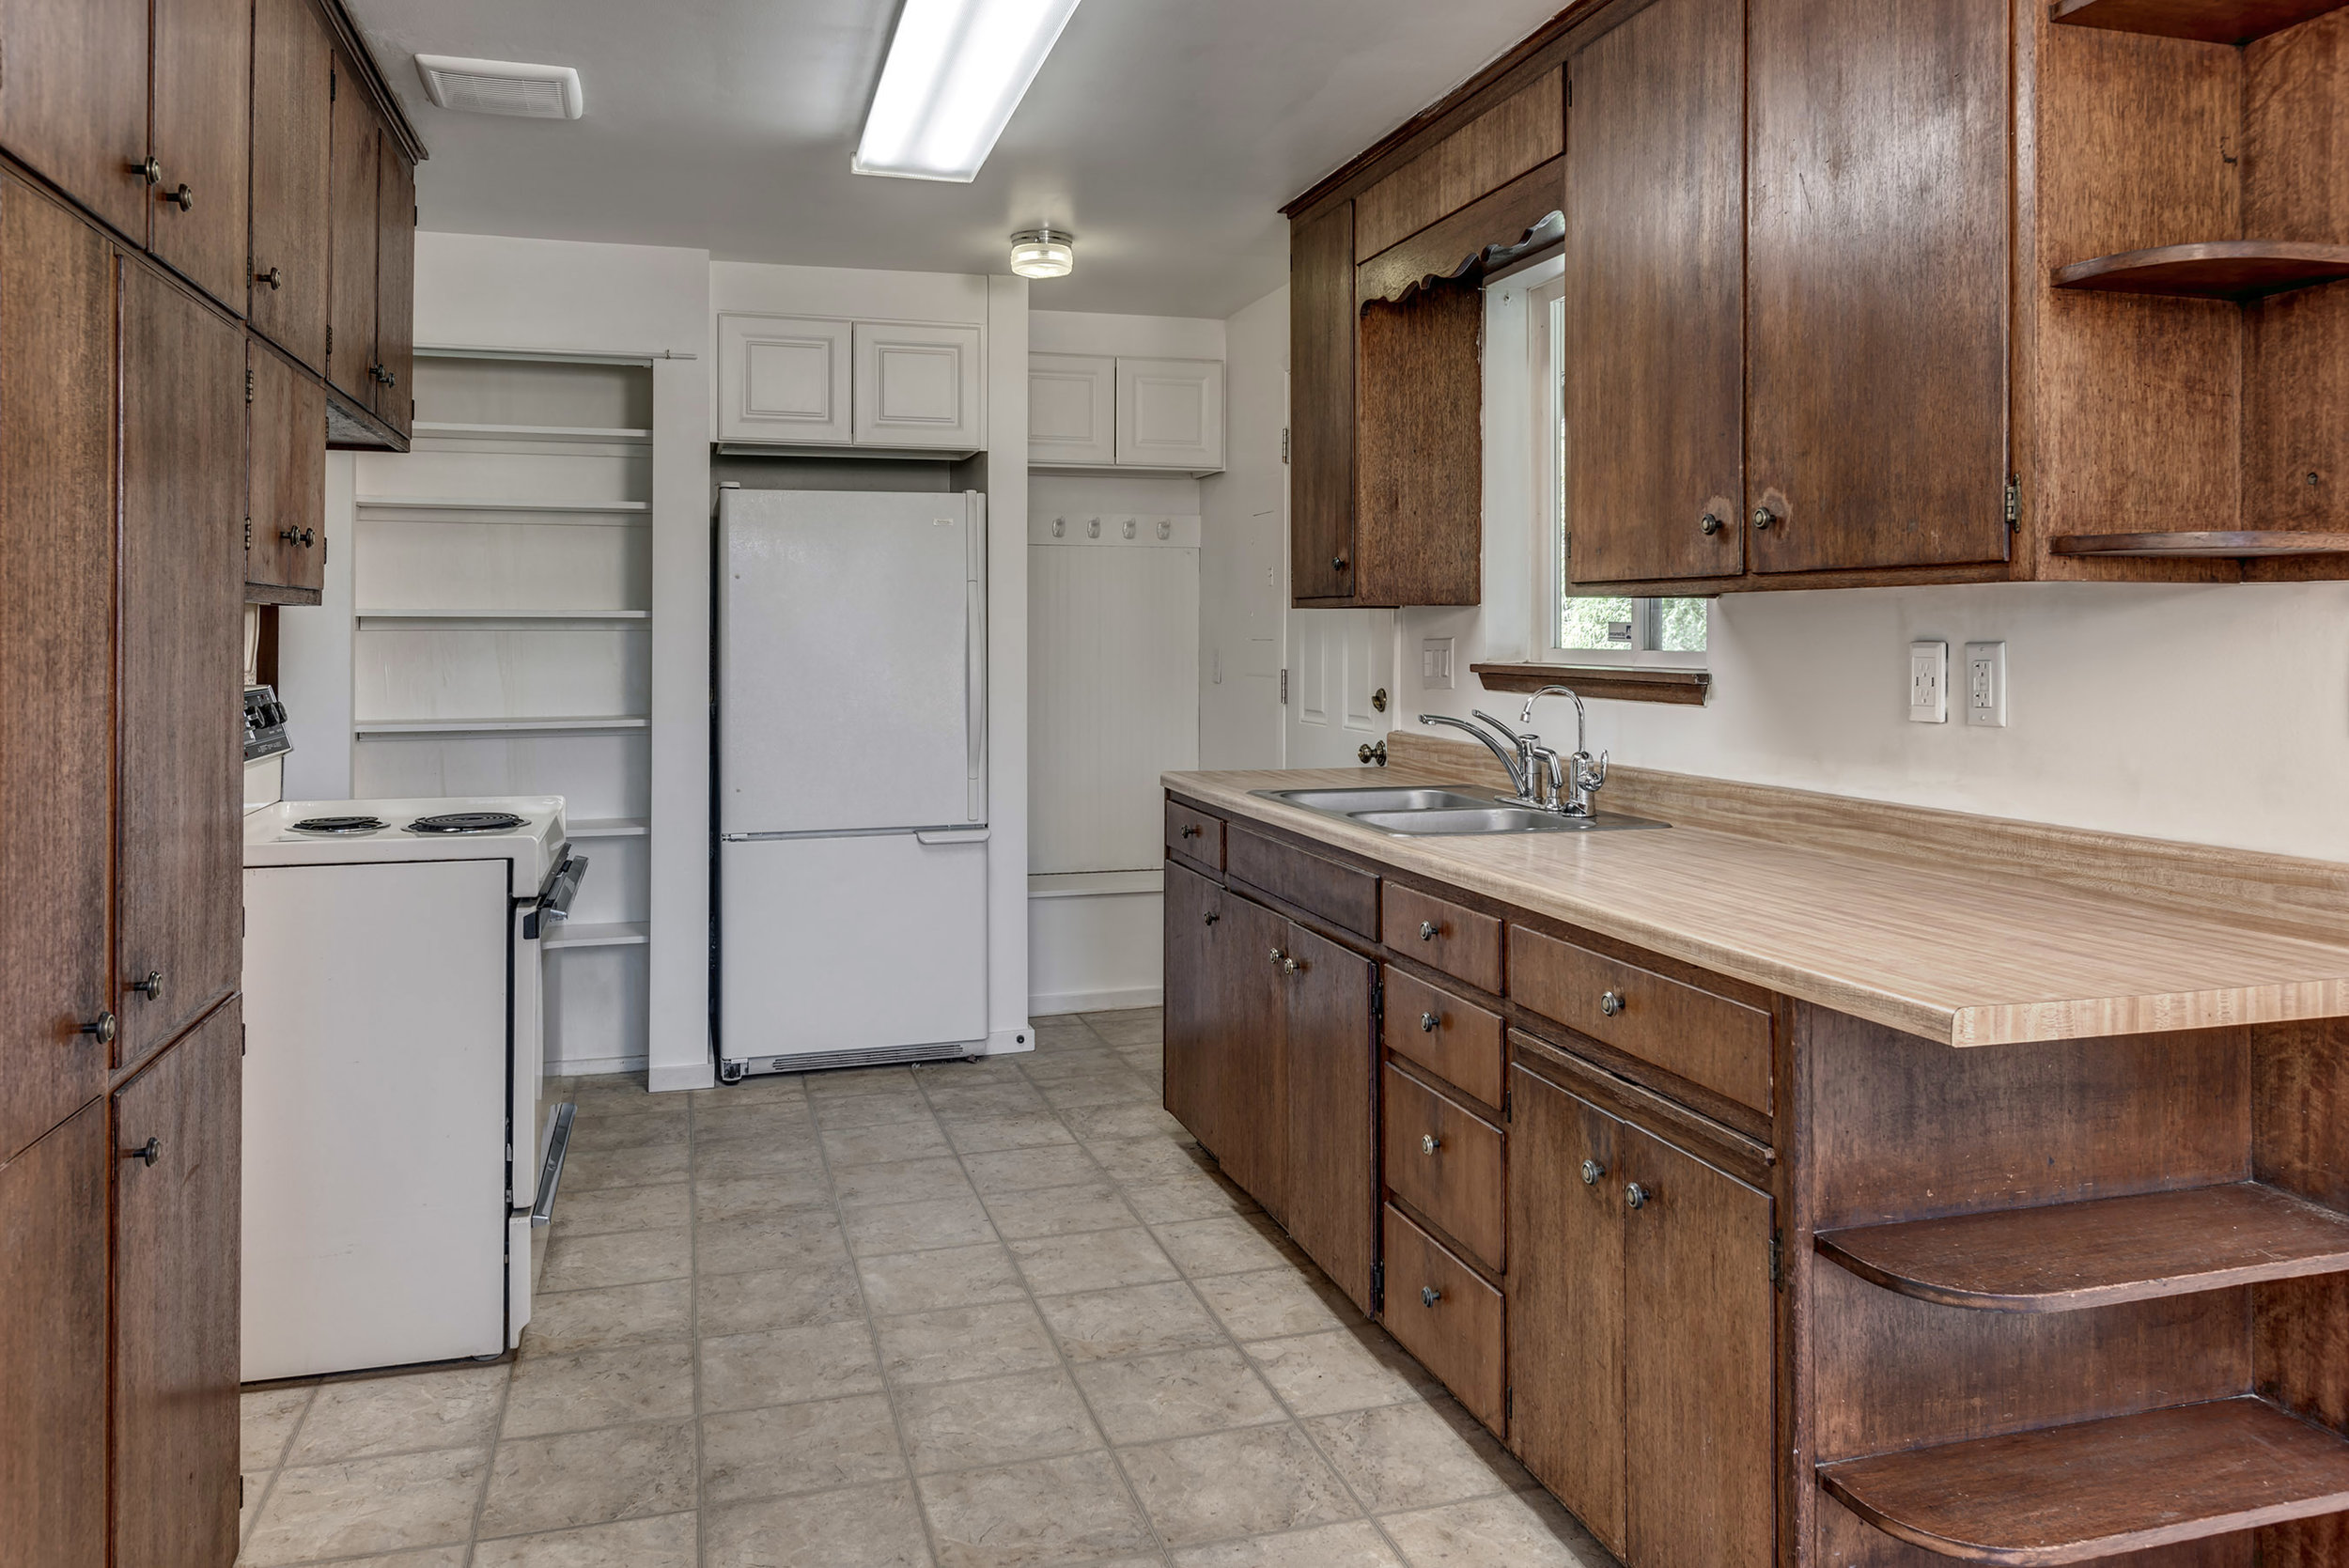 09-Kitchen01.jpg